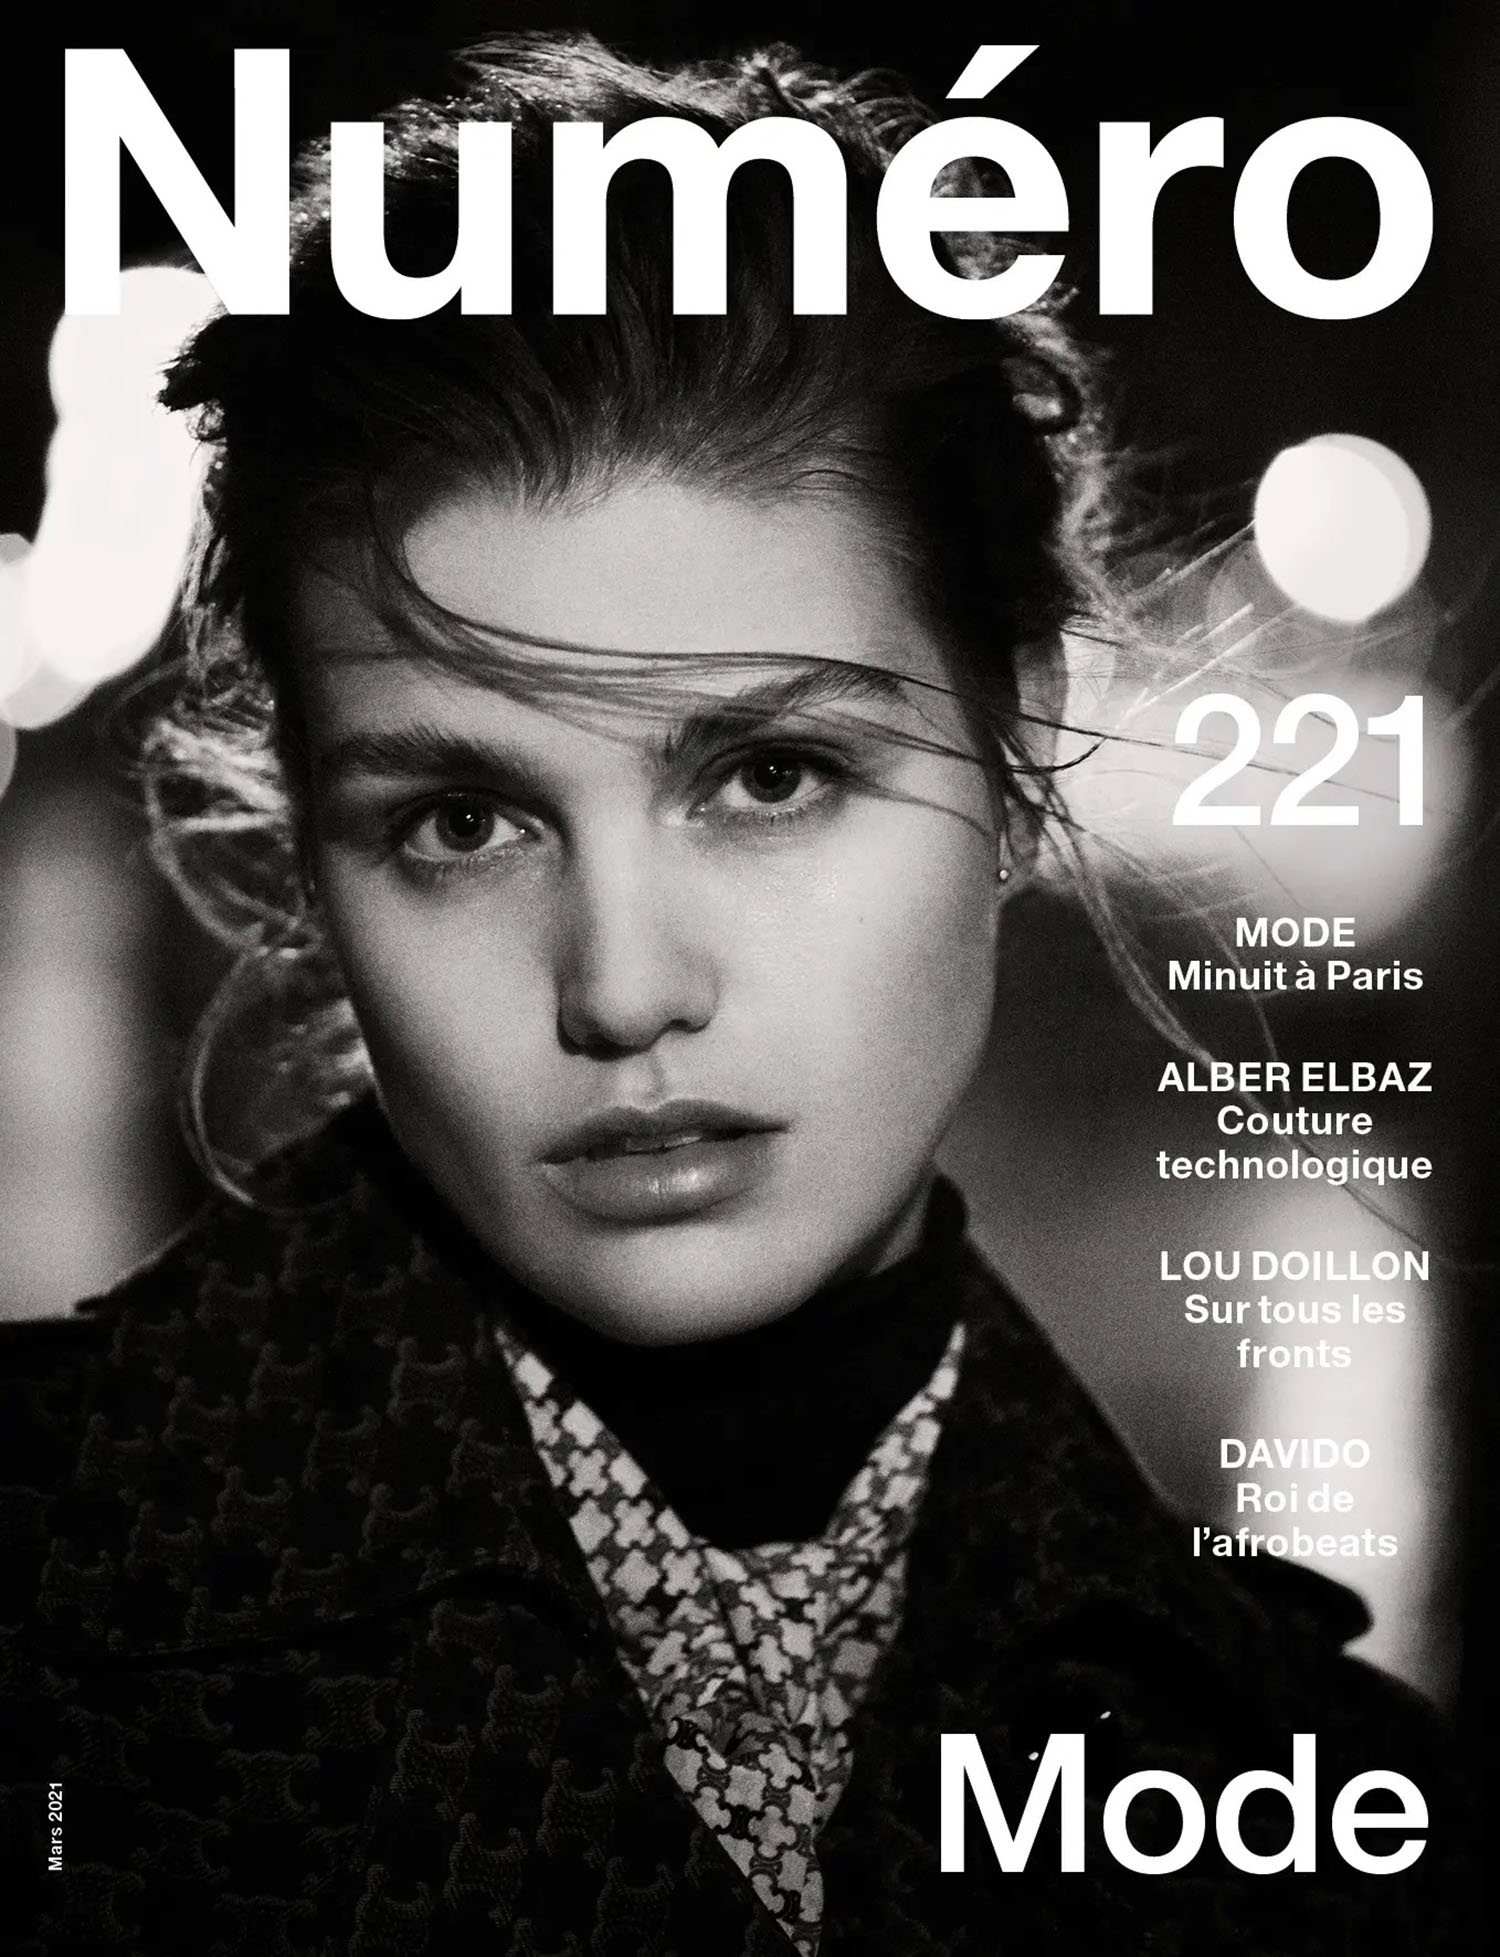 Luna Bijl covers Numéro March 2021 by Boo George